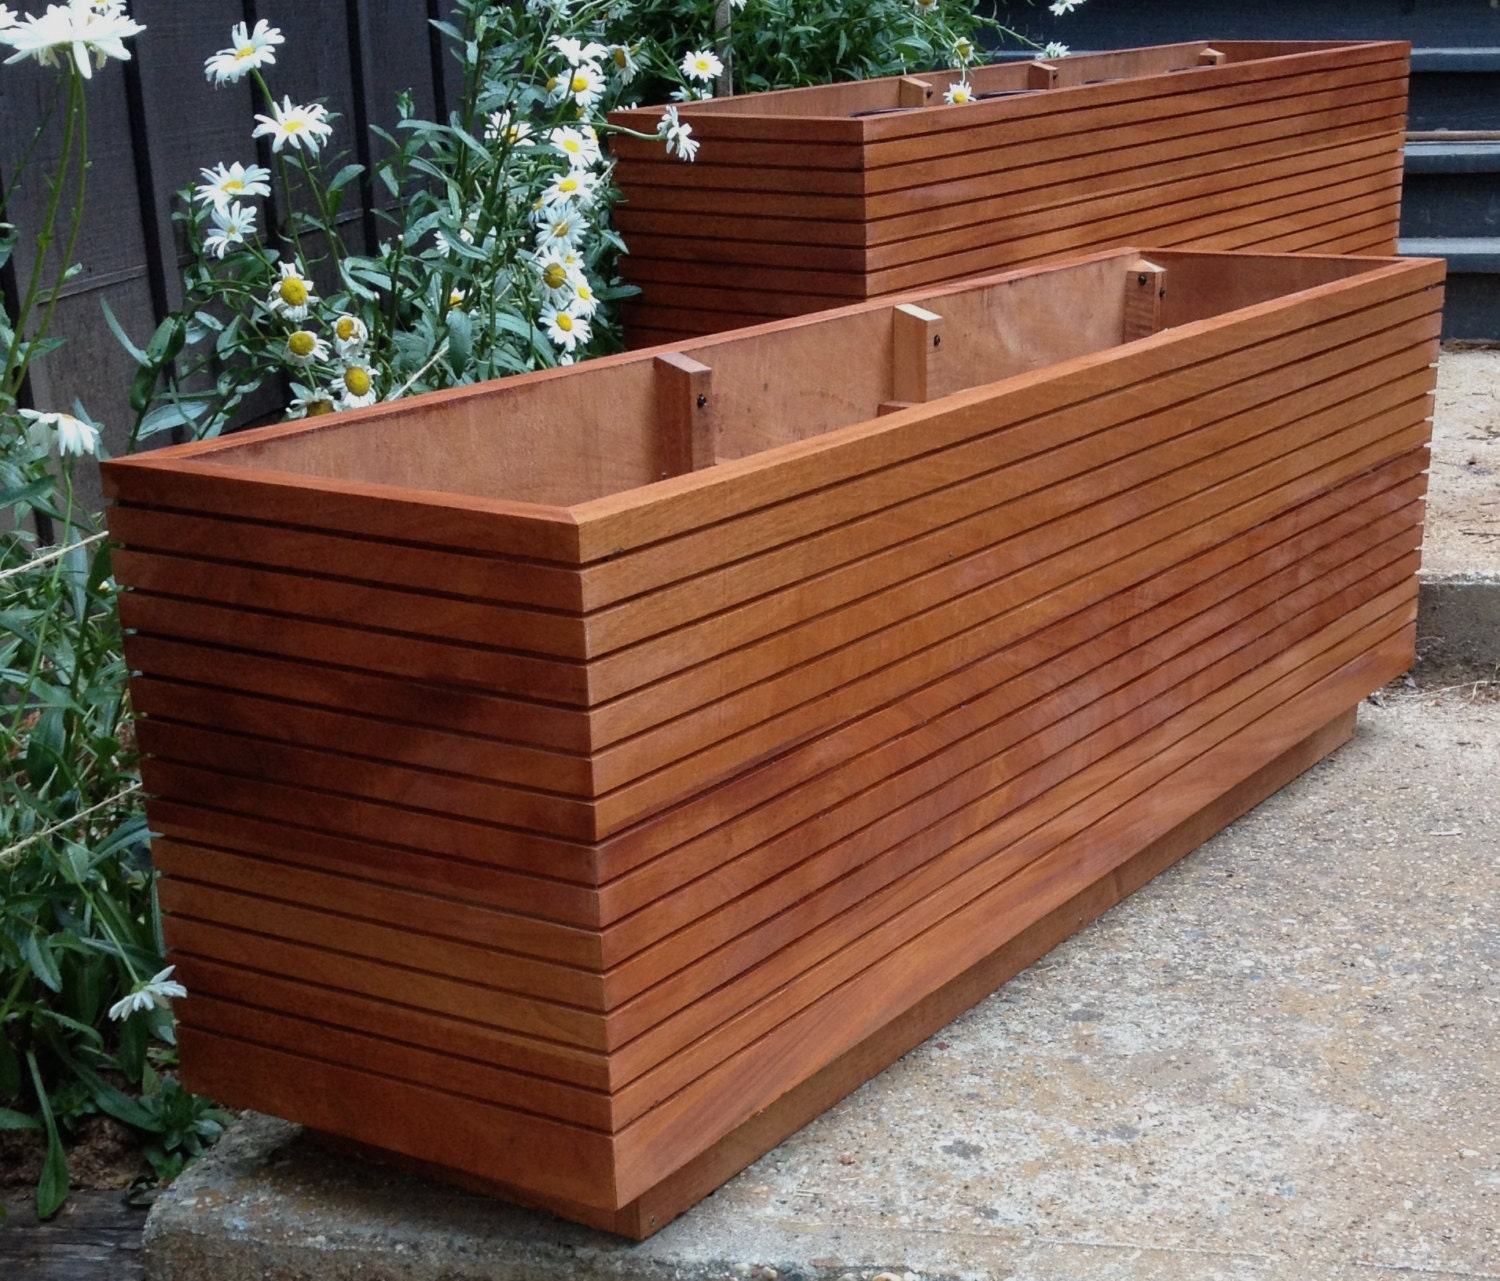 make vista s boxes box vistas planter for bike lane prototype mar it